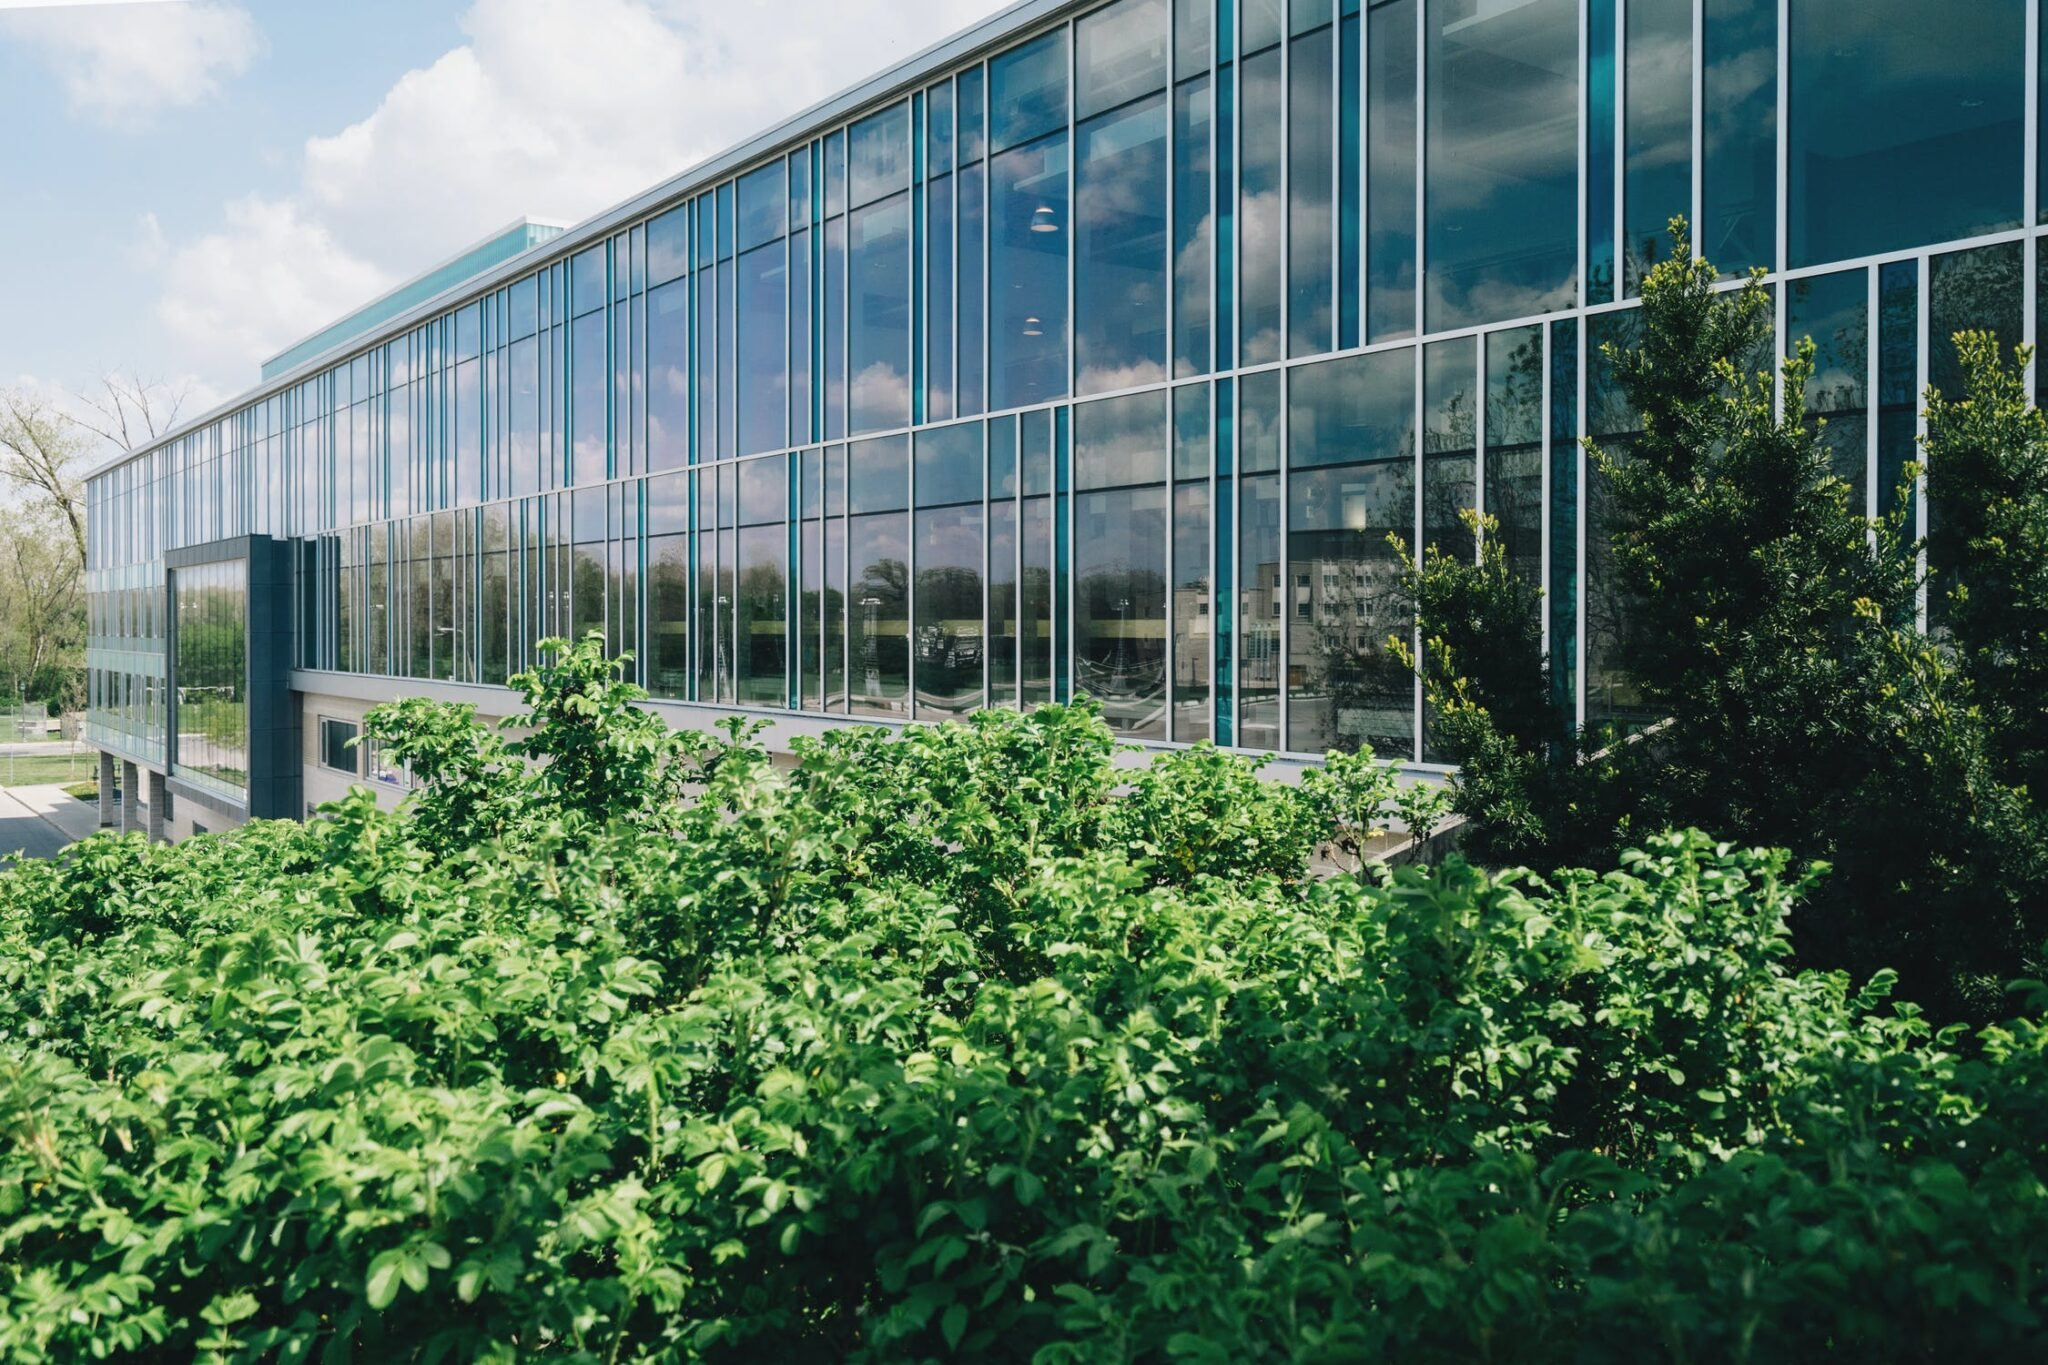 2021 Construction Trends Facilitated By Commercial Window Films - Commercial Window Film in Grand Rapids, Michigan